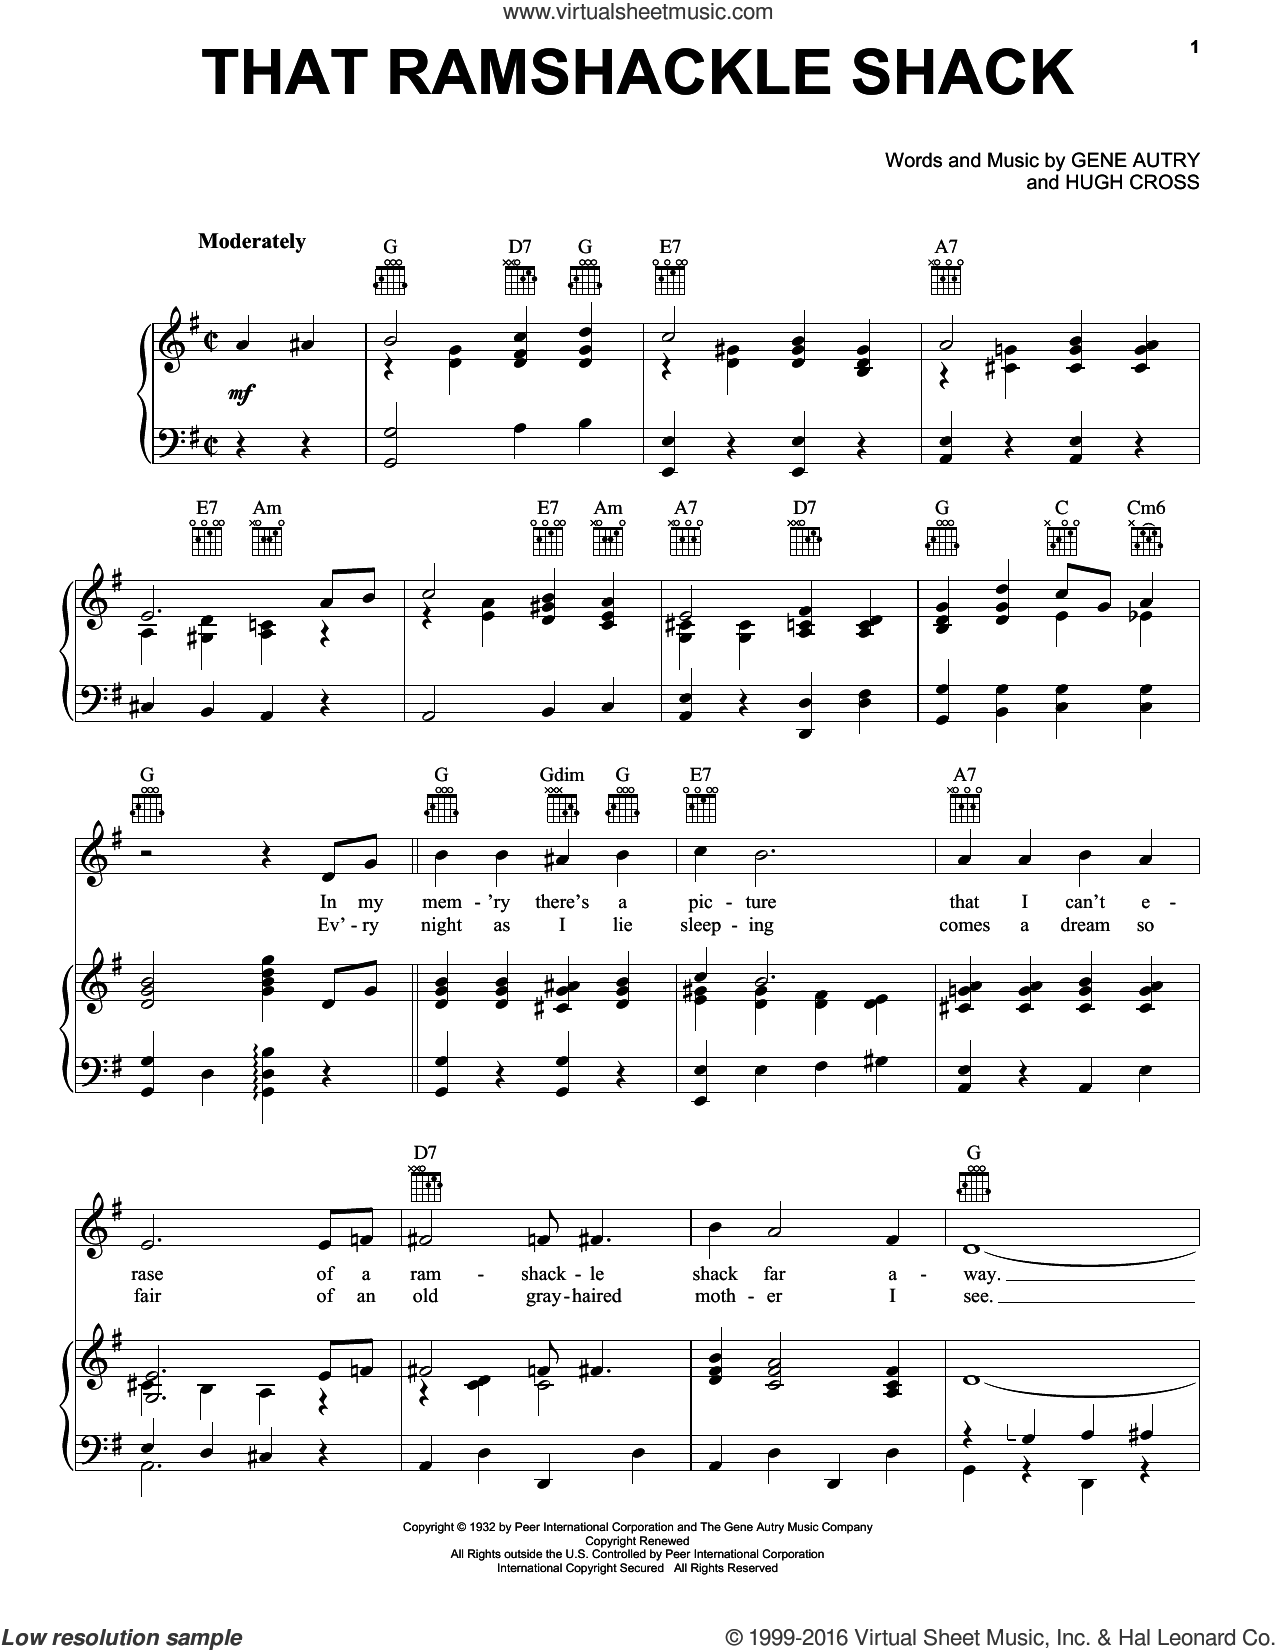 That Ramshackle Shack sheet music for voice, piano or guitar by Gene Autry and Hugh Cross, intermediate skill level